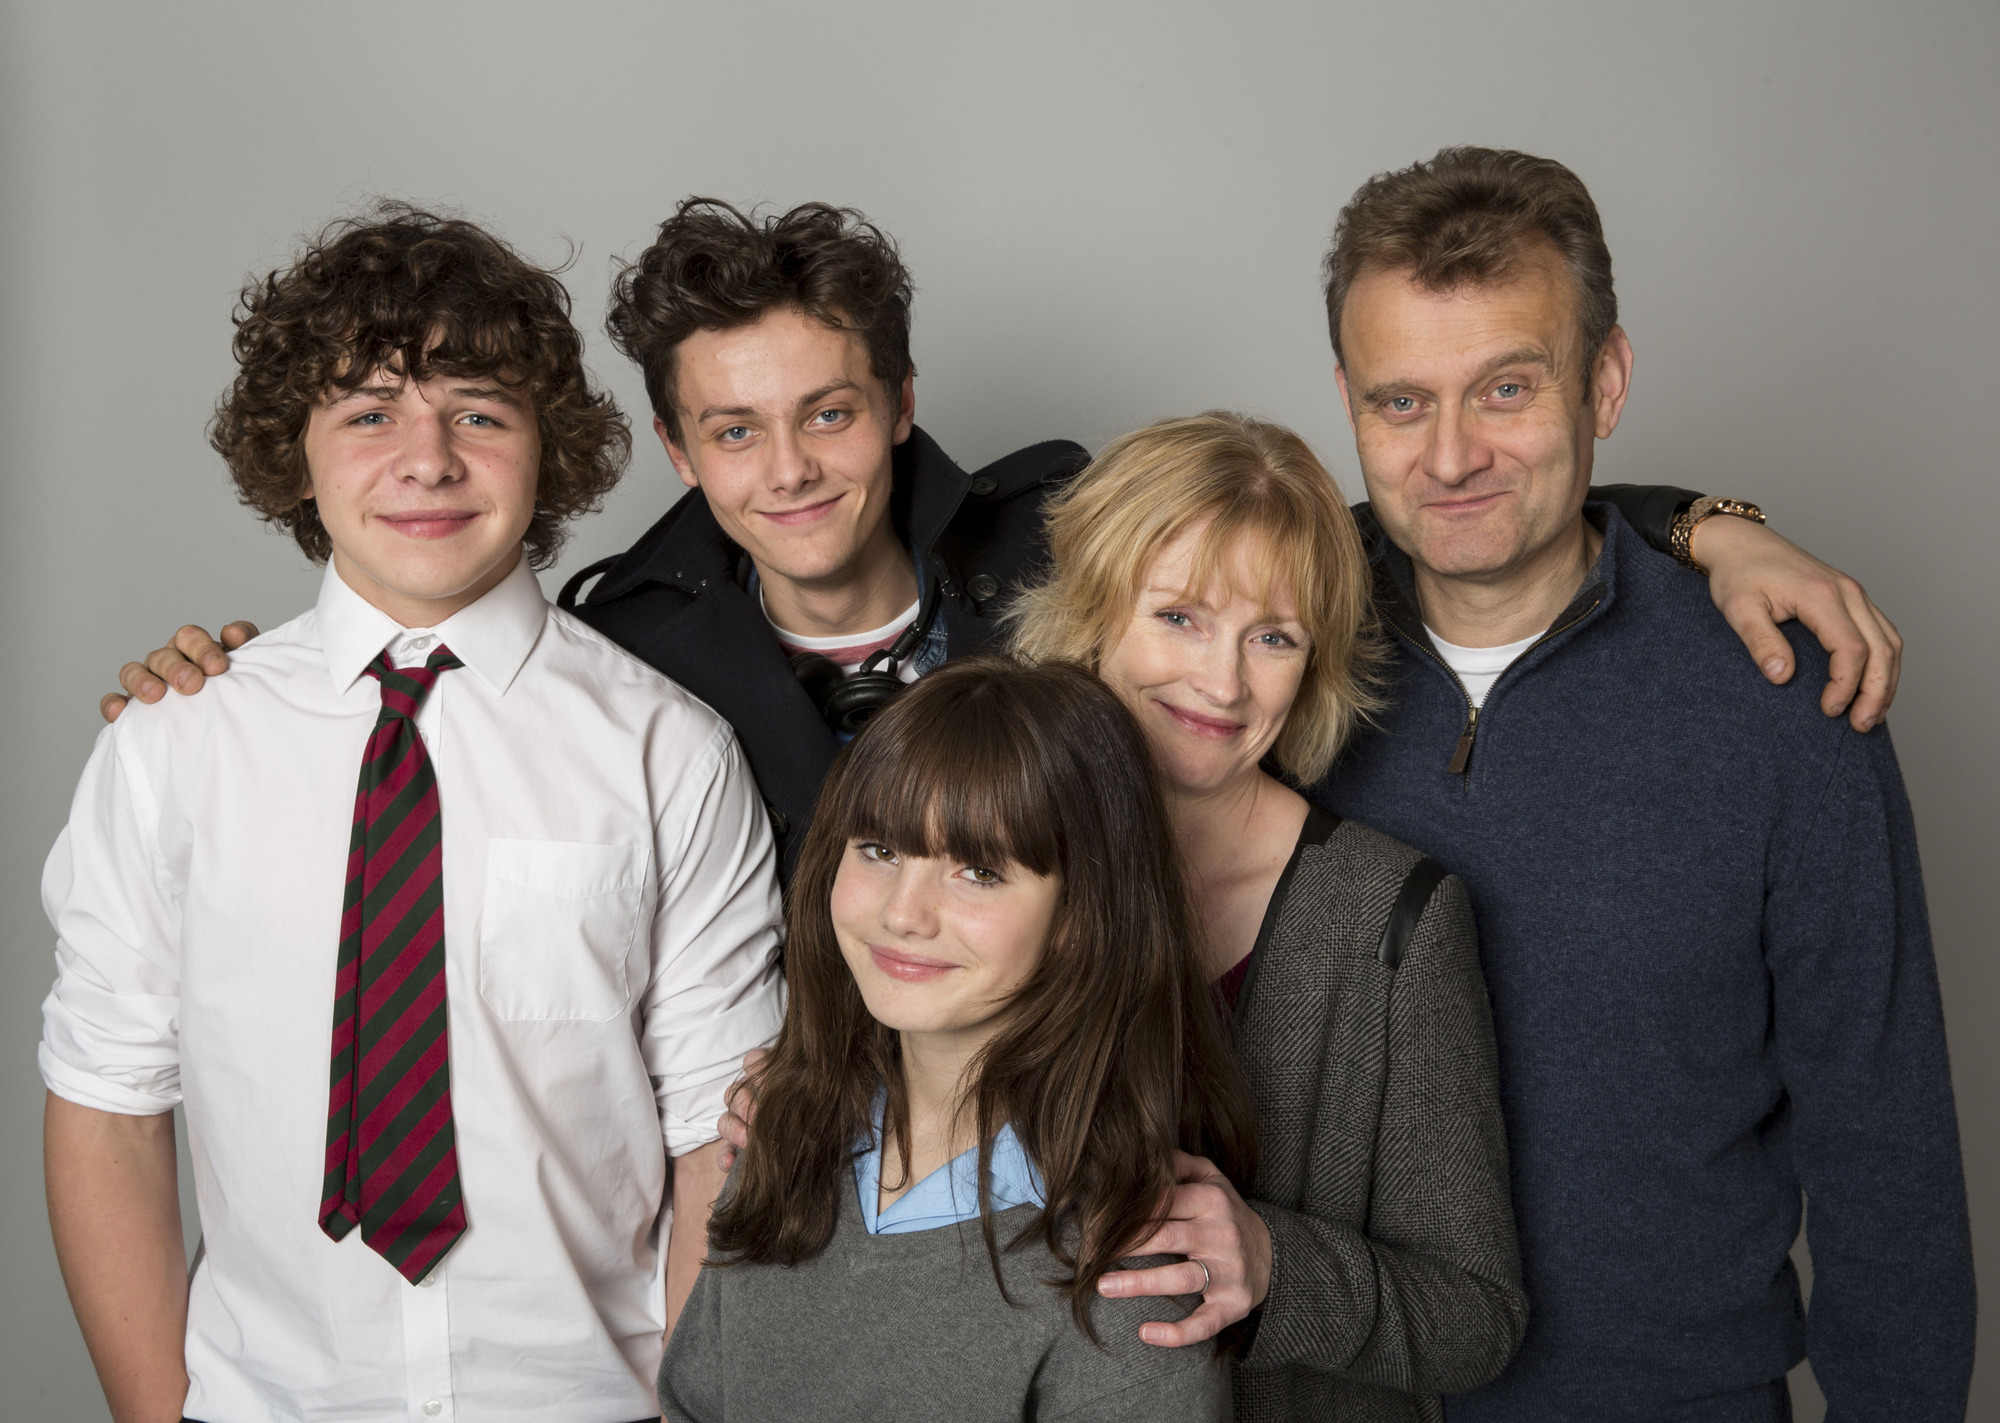 Outnumbered series five: Claire Skinner, High Dennis, Tyger Drew Honey, Daniel Roche, Ramona Marquez